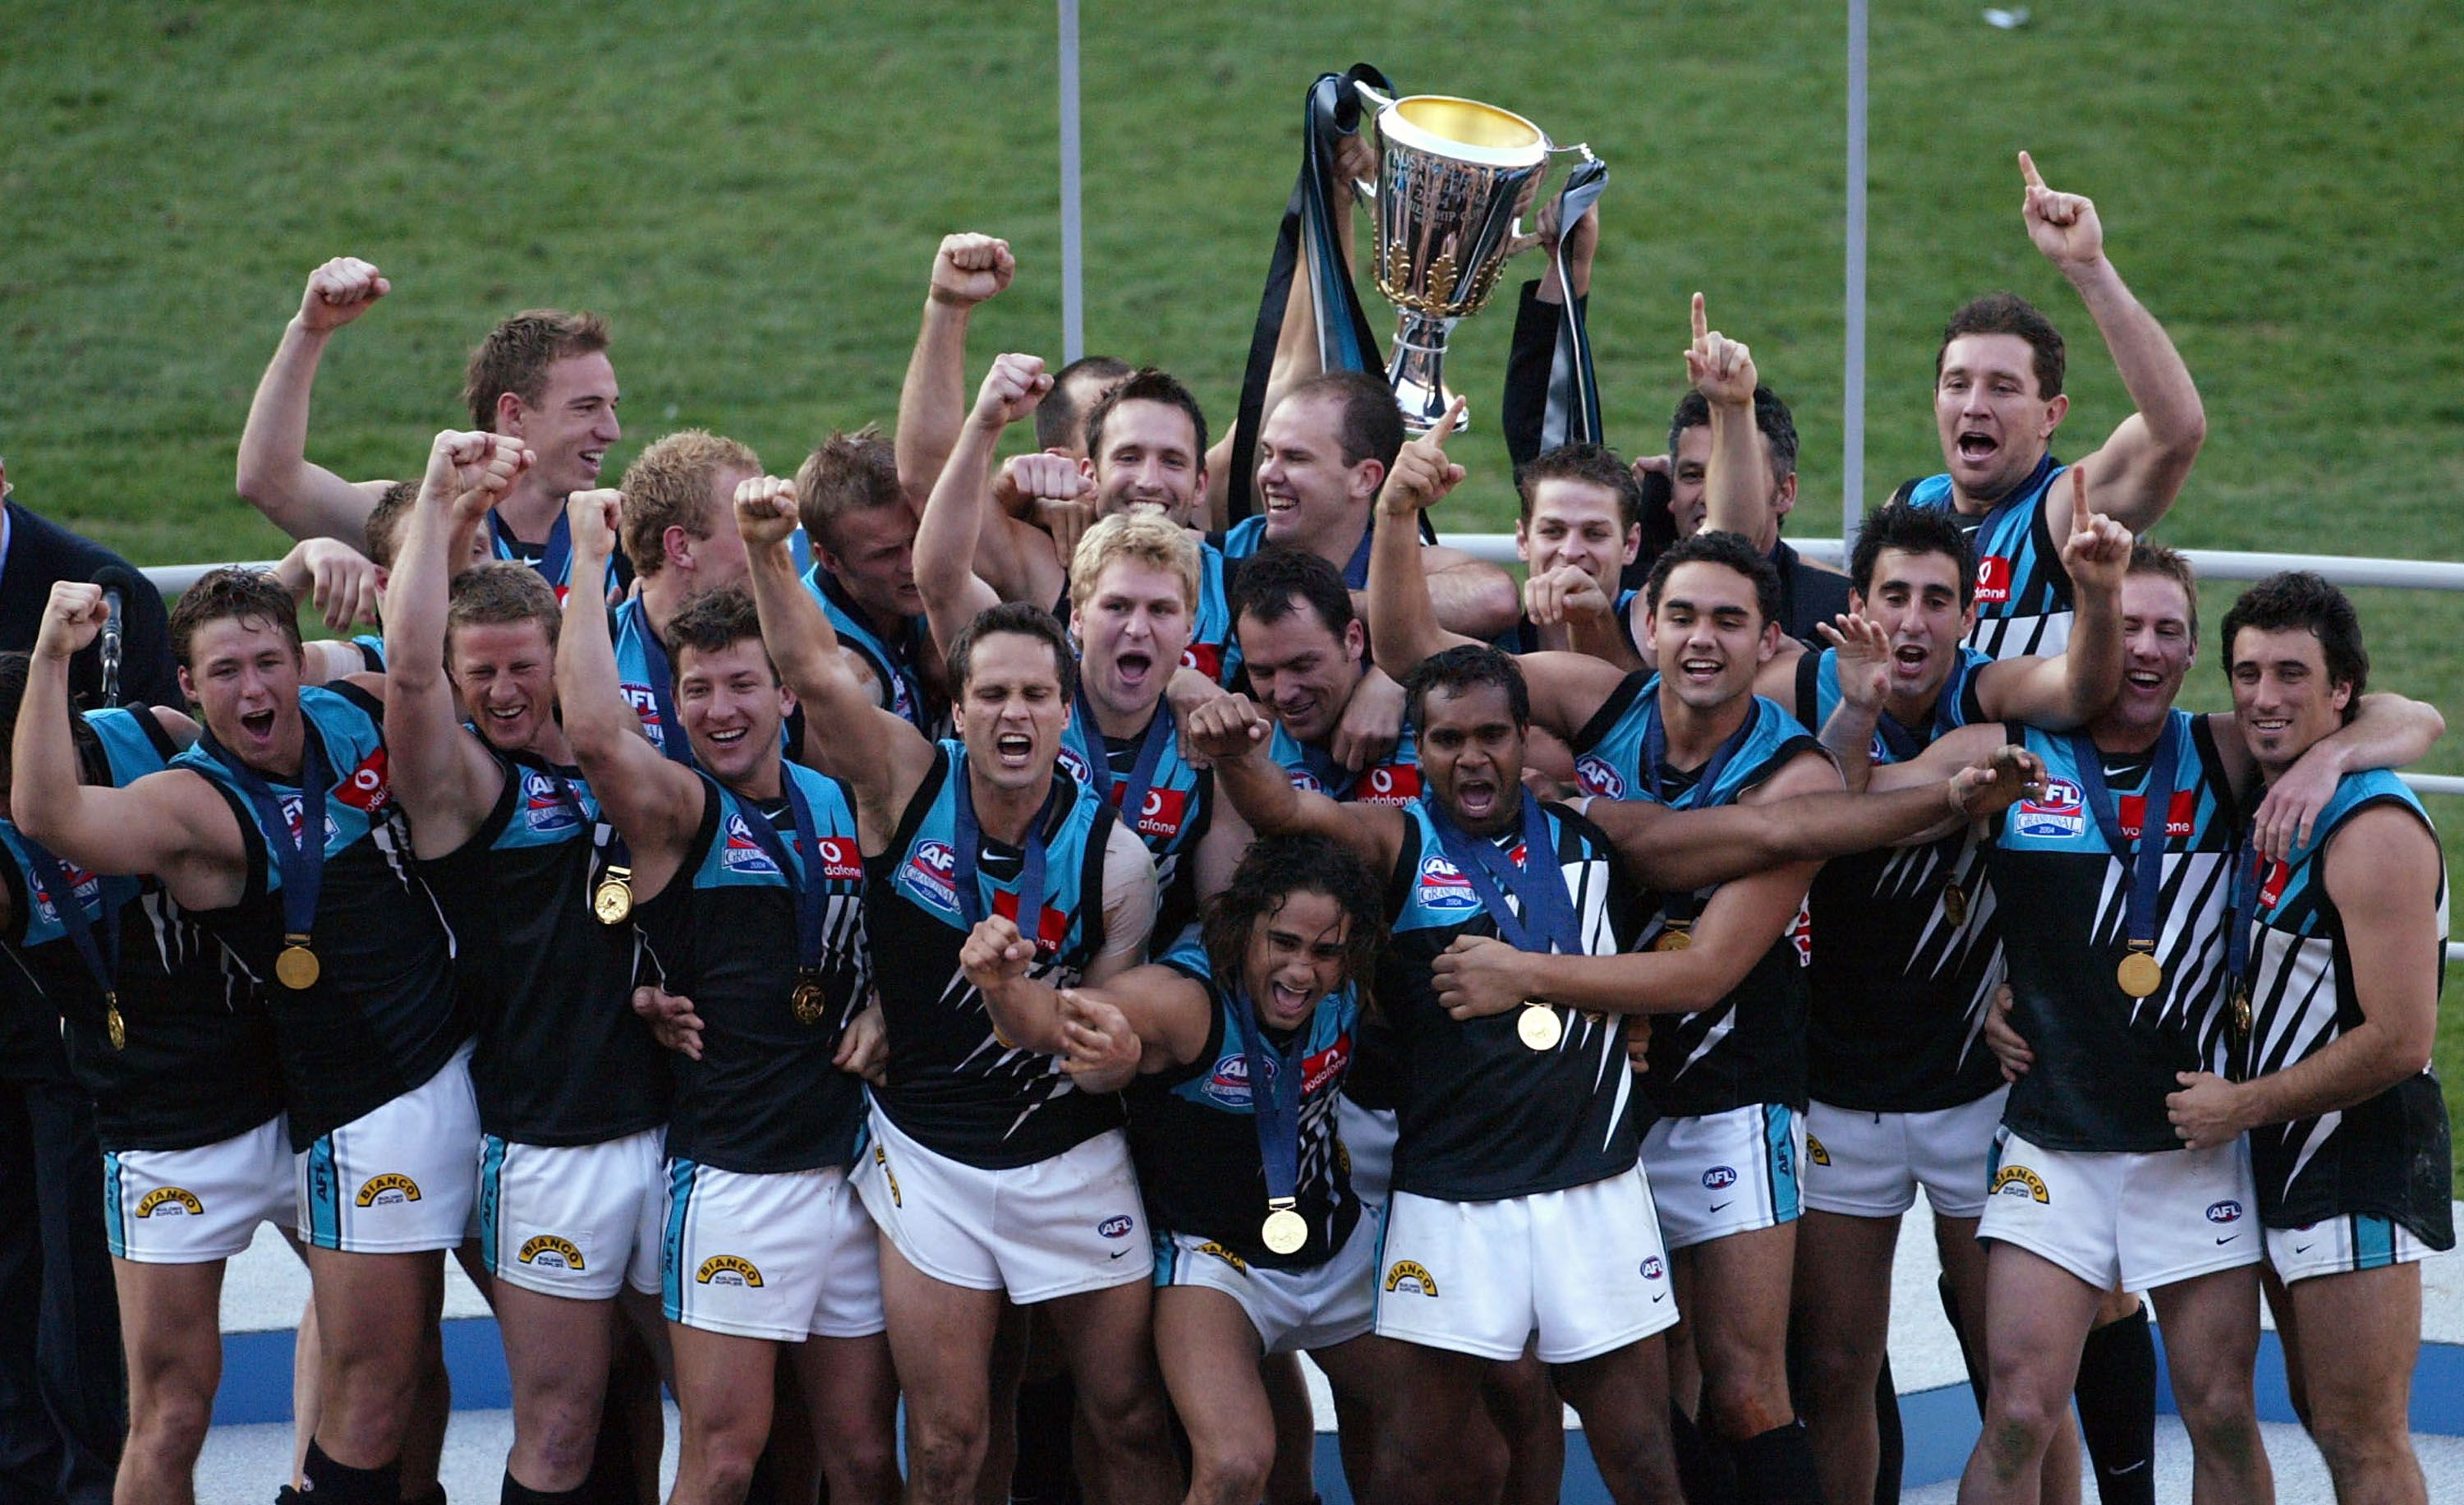 Port Adelaide's inaugural AFL Premiership team in 2004